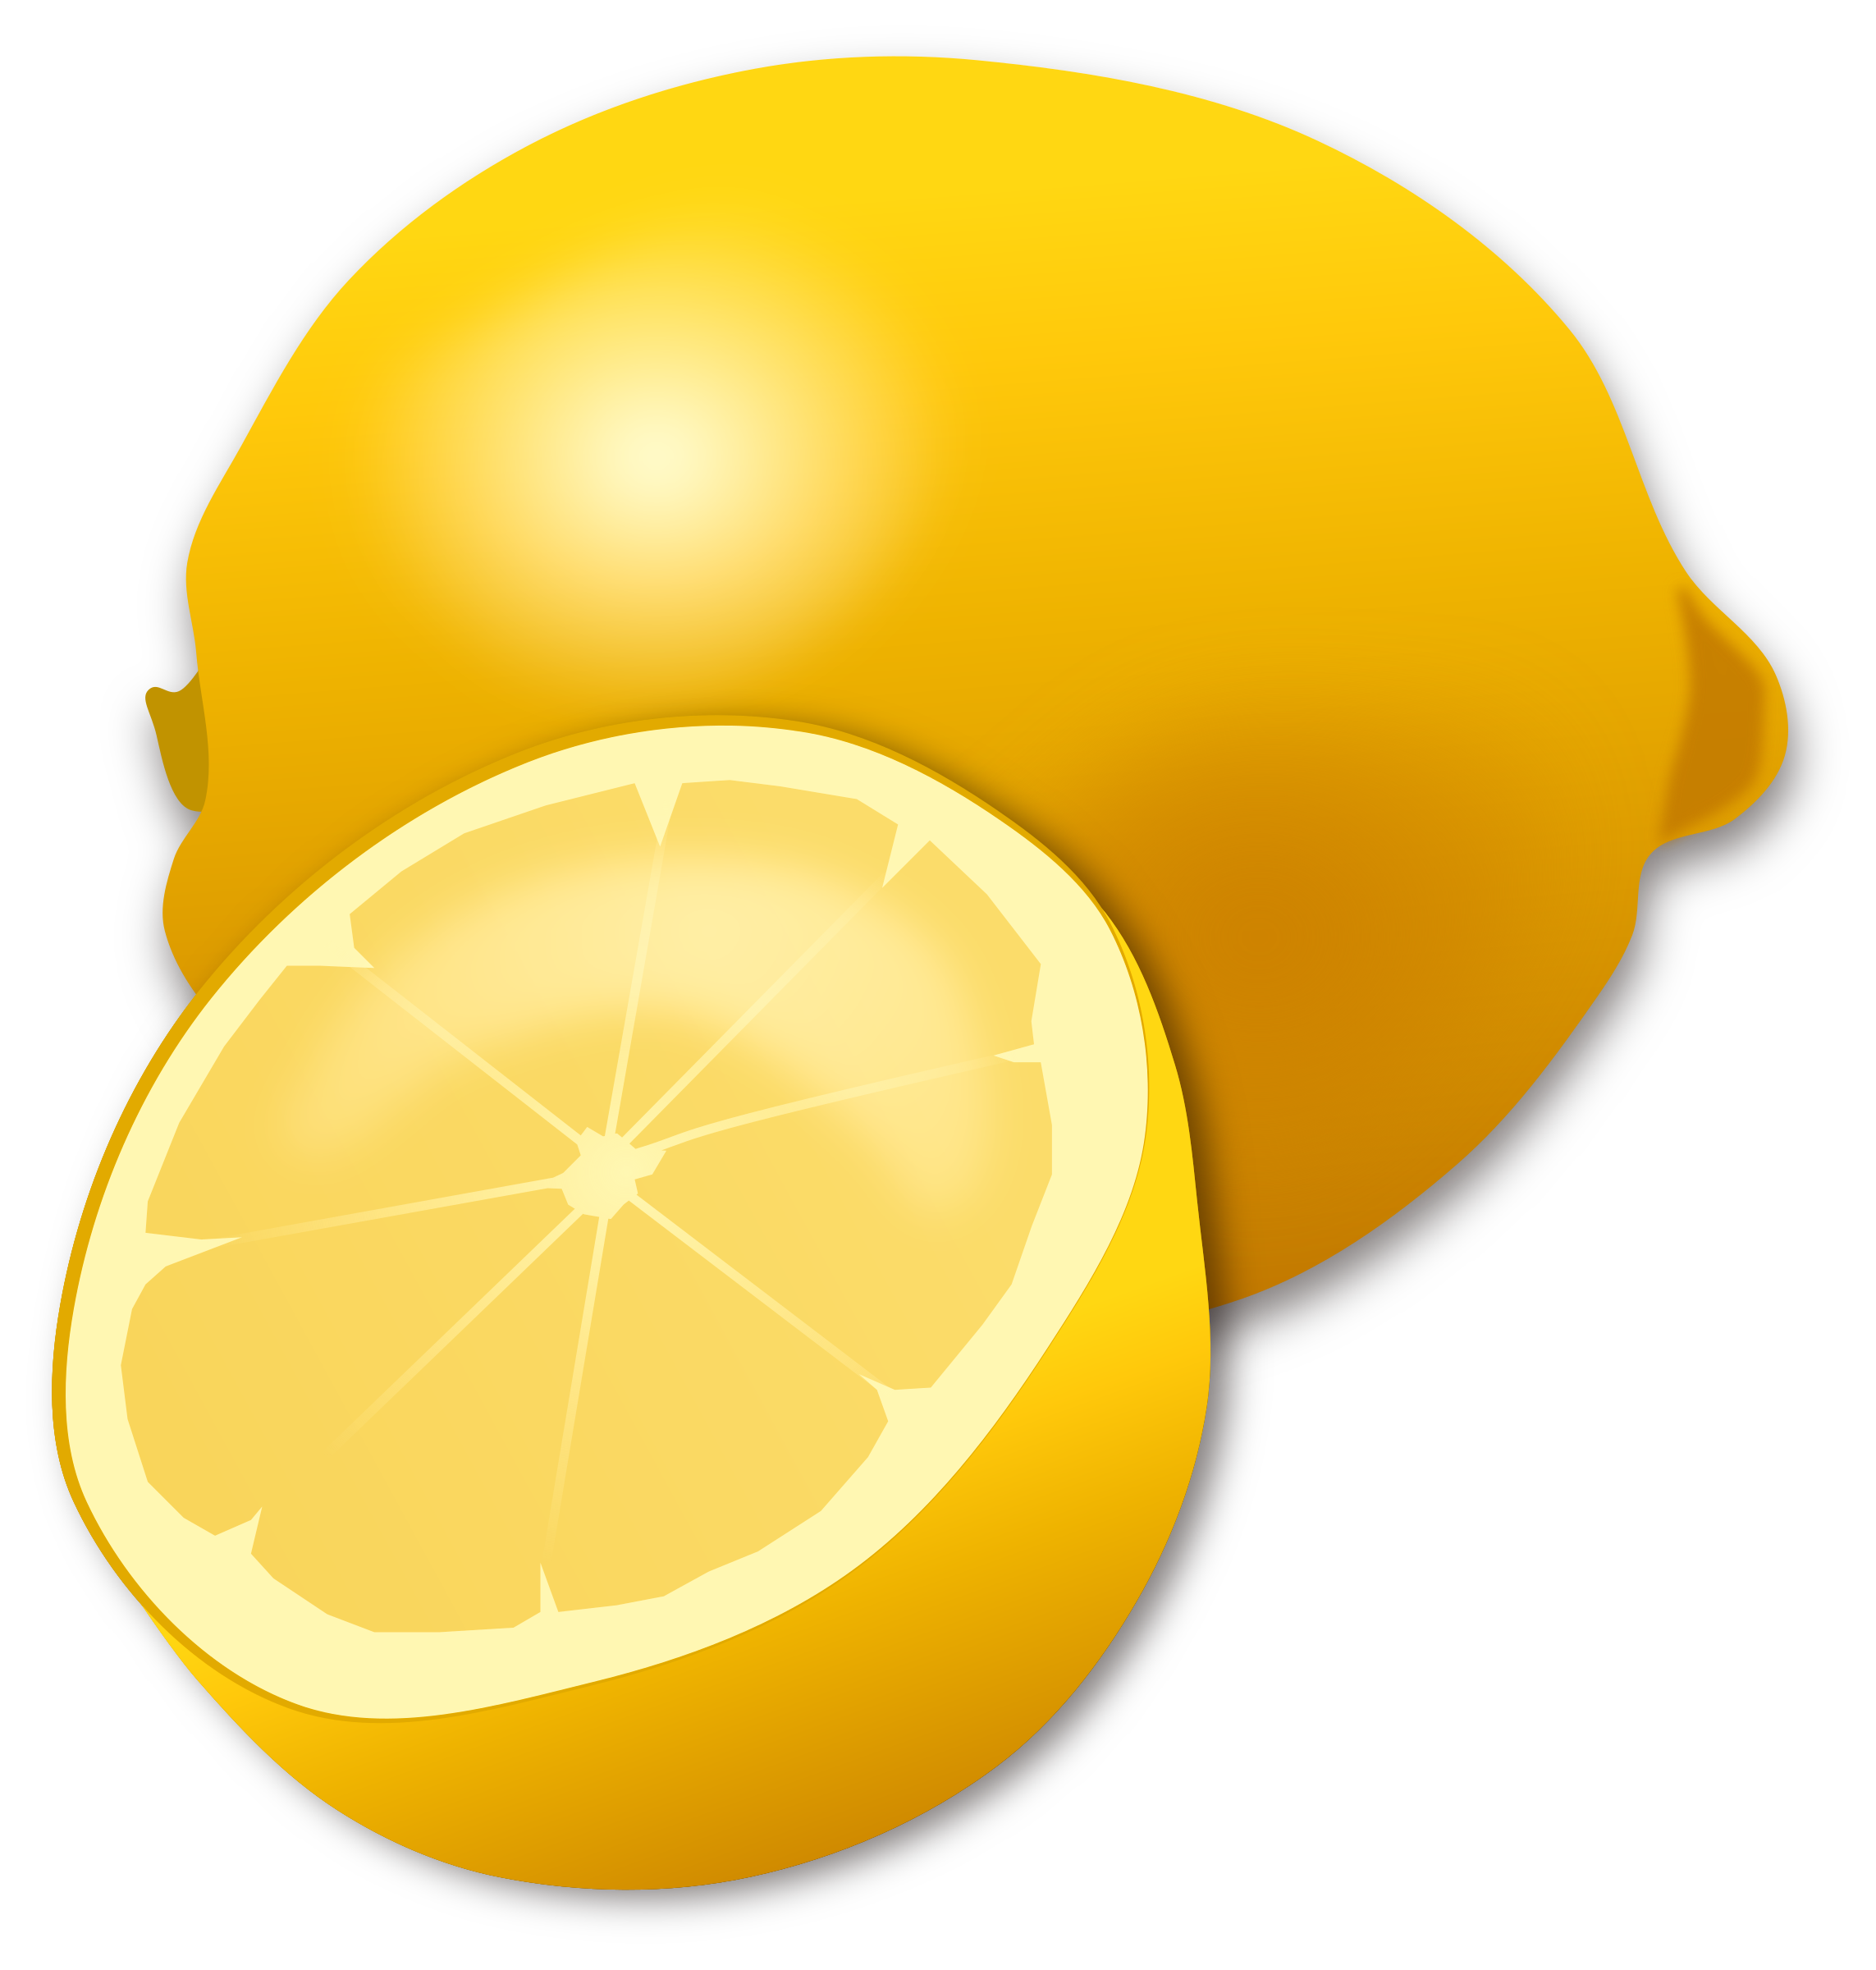 Lemon clipart sun. Png gallery isolated images